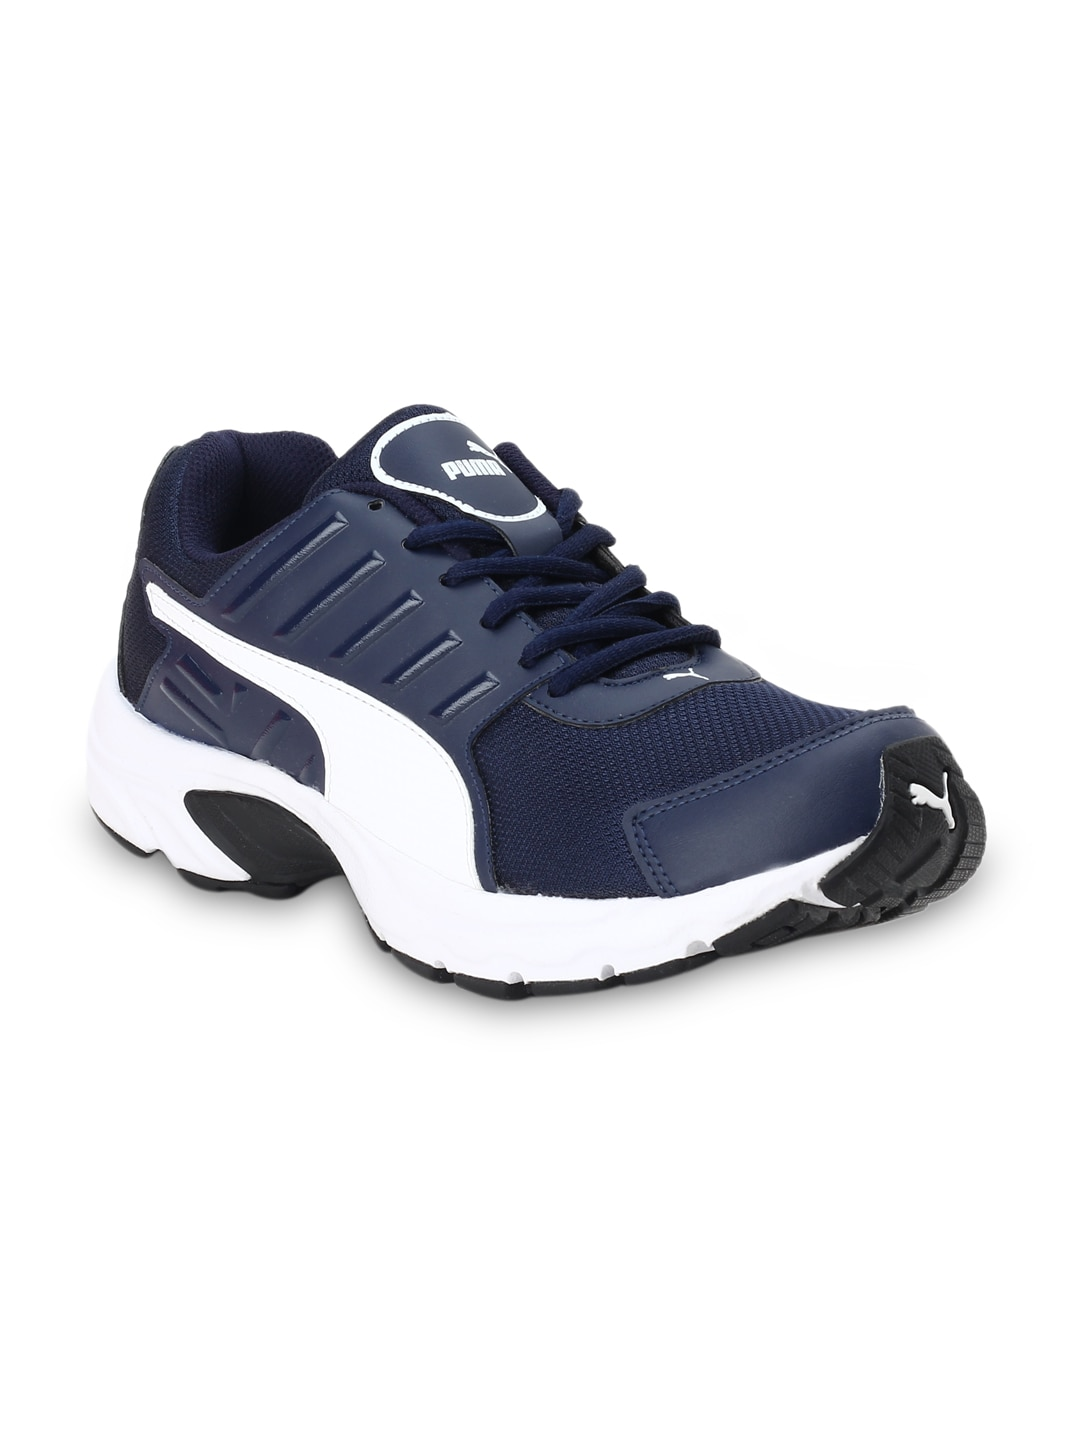 super popular 307d0 bf6c7 Leather Footwear Casual Shoes Sports - Buy Leather Footwear Casual Shoes  Sports online in India